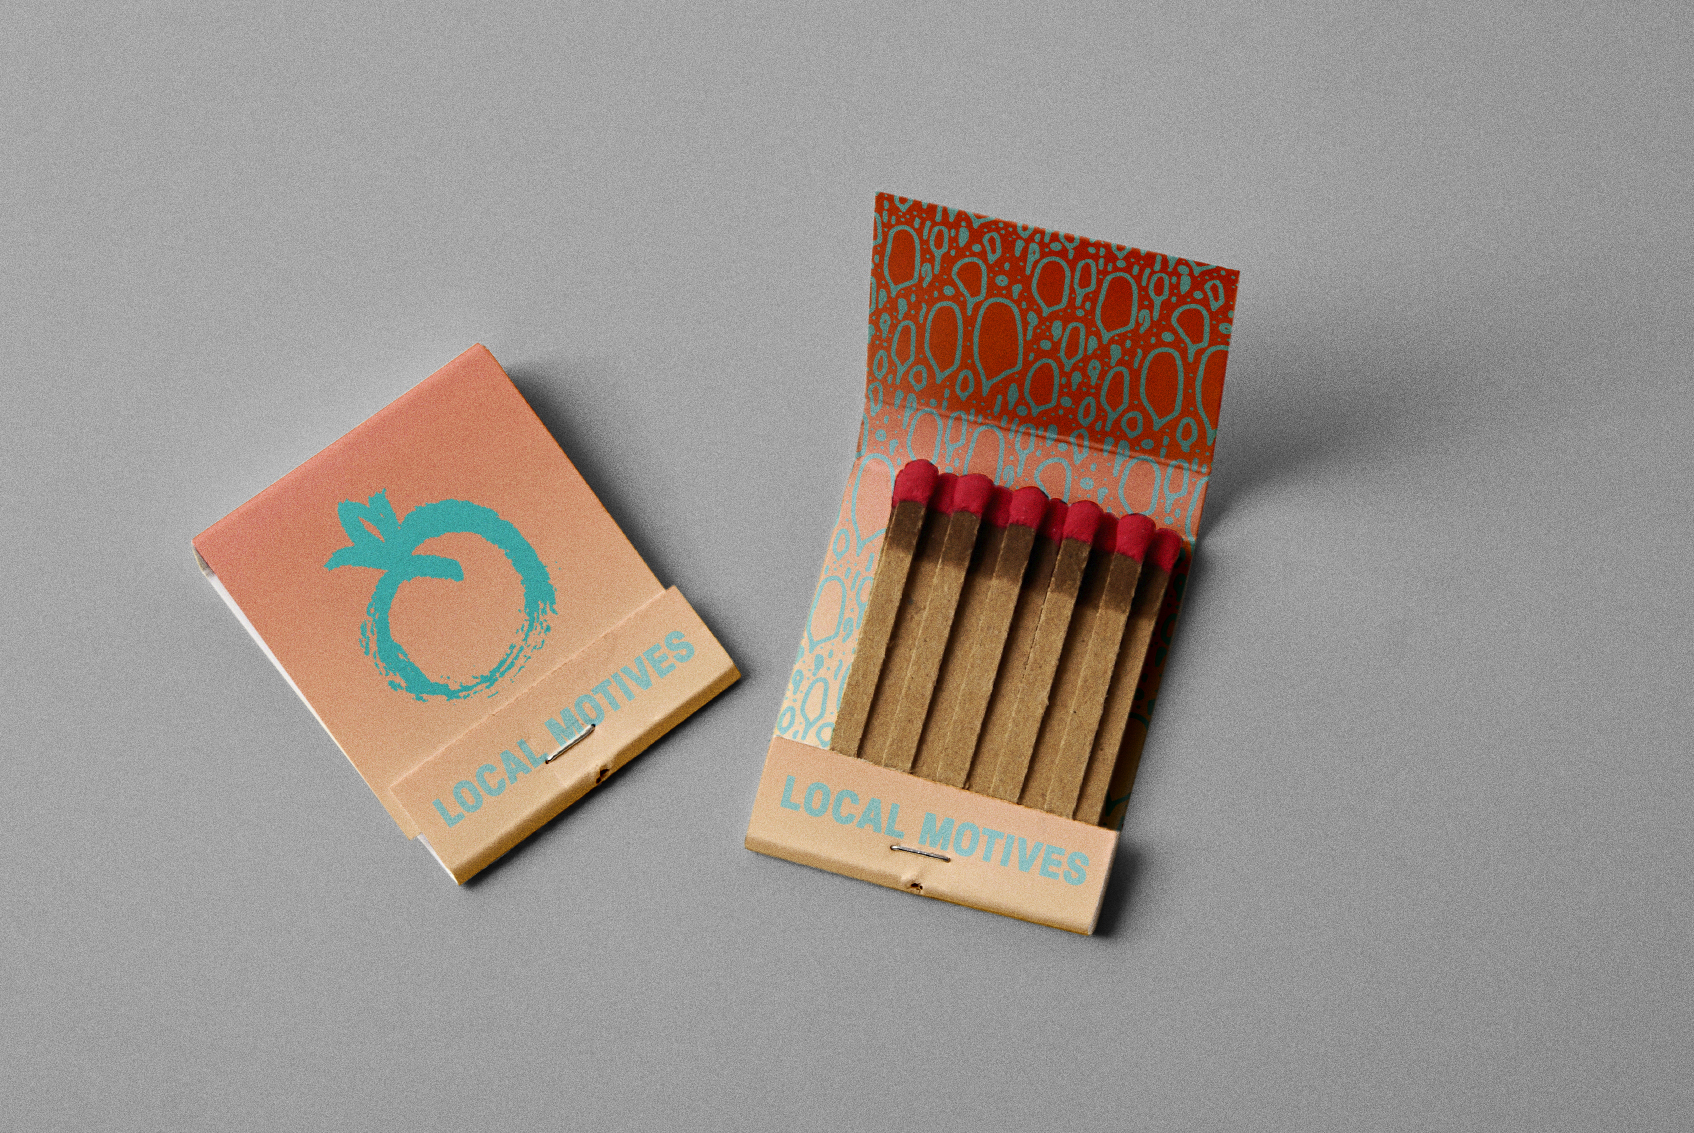 matches and match book